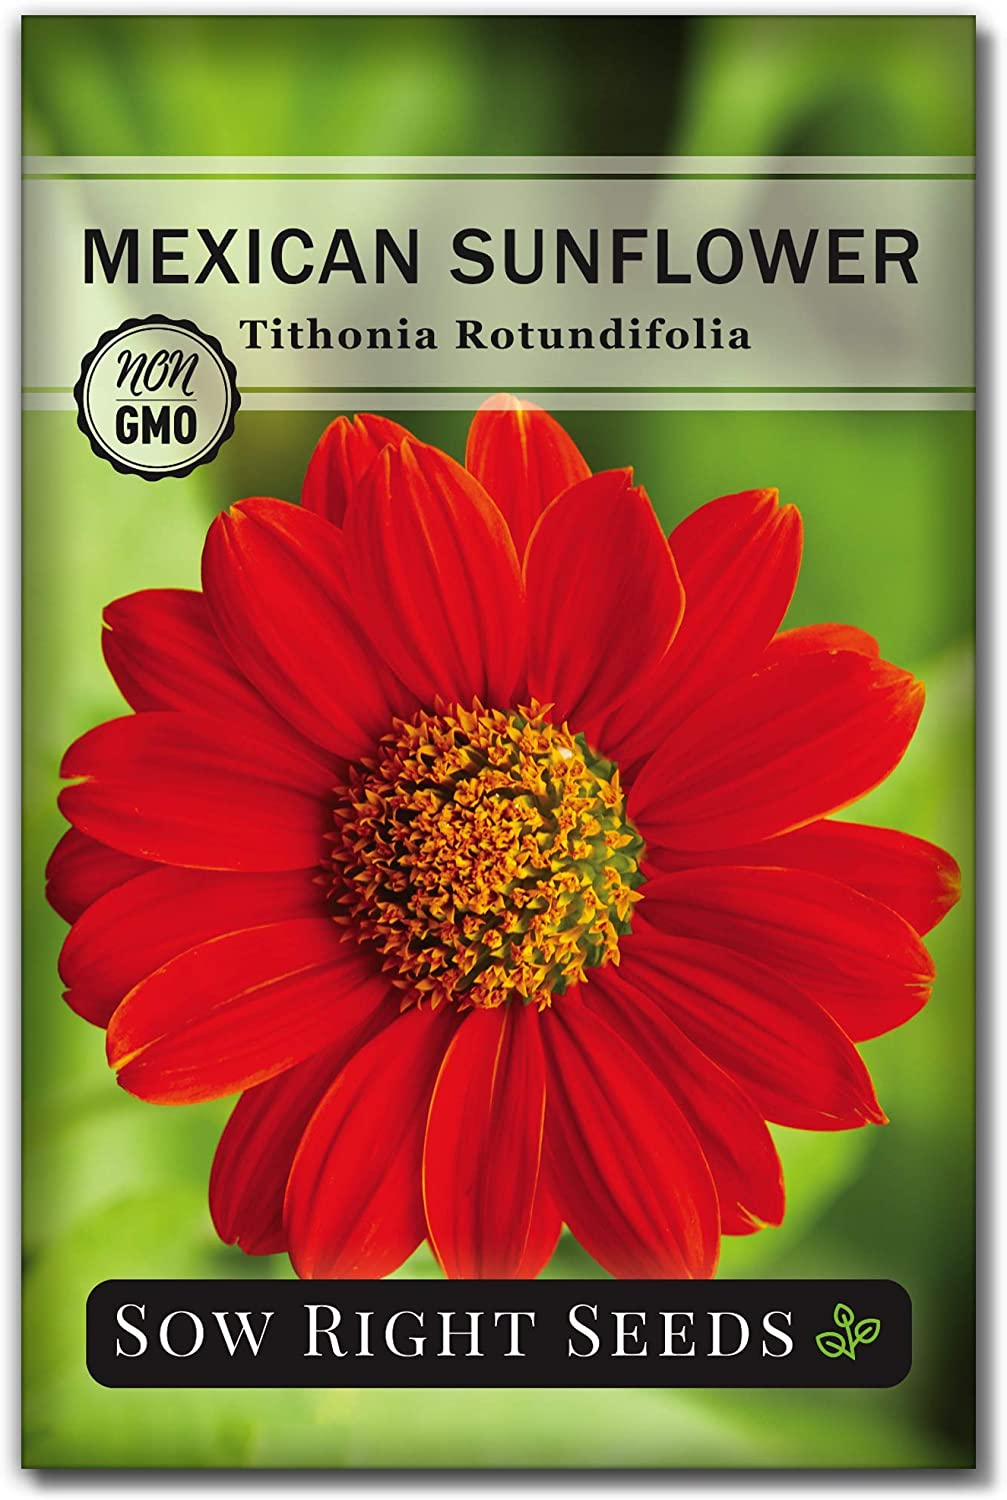 Sow Right Seeds - Mexican Sunflower Seed for Planting- Full Packet with Instructions, Beautiful Non-GMO Heirloom Flower to Plant, Wonderful Gardening Gift (1 Packet)